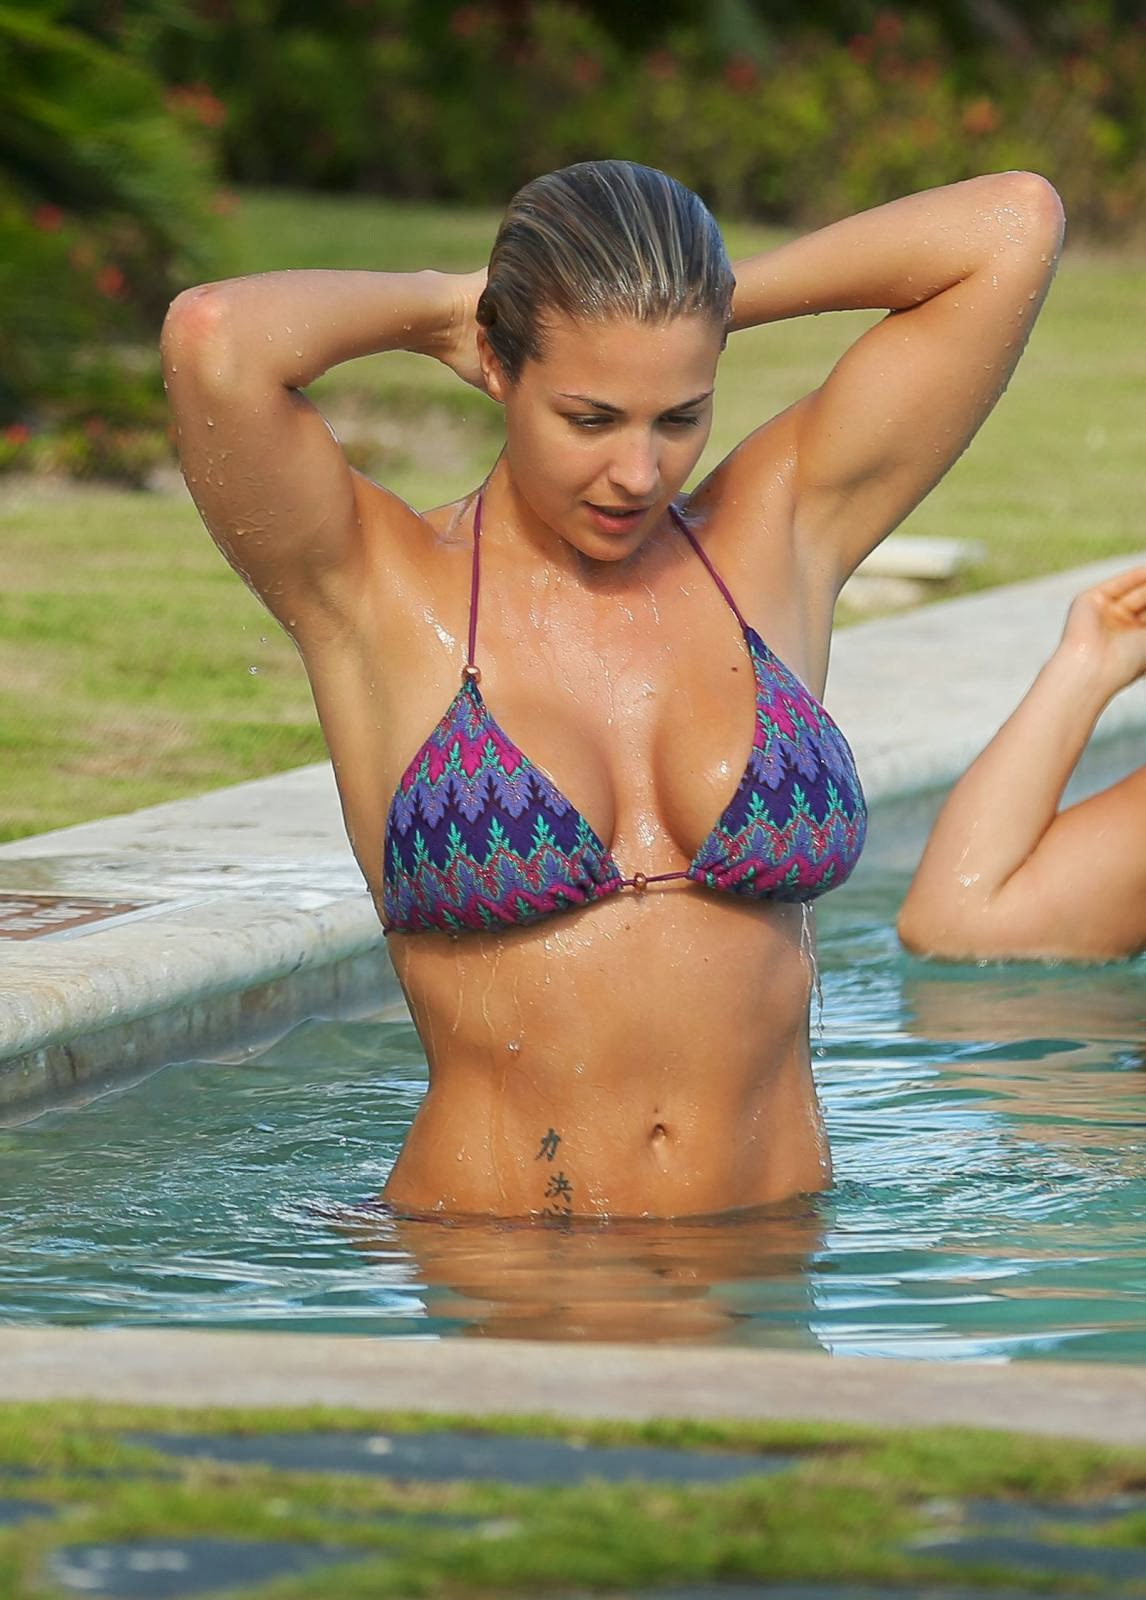 Are Gemma atkinson bikini confirm